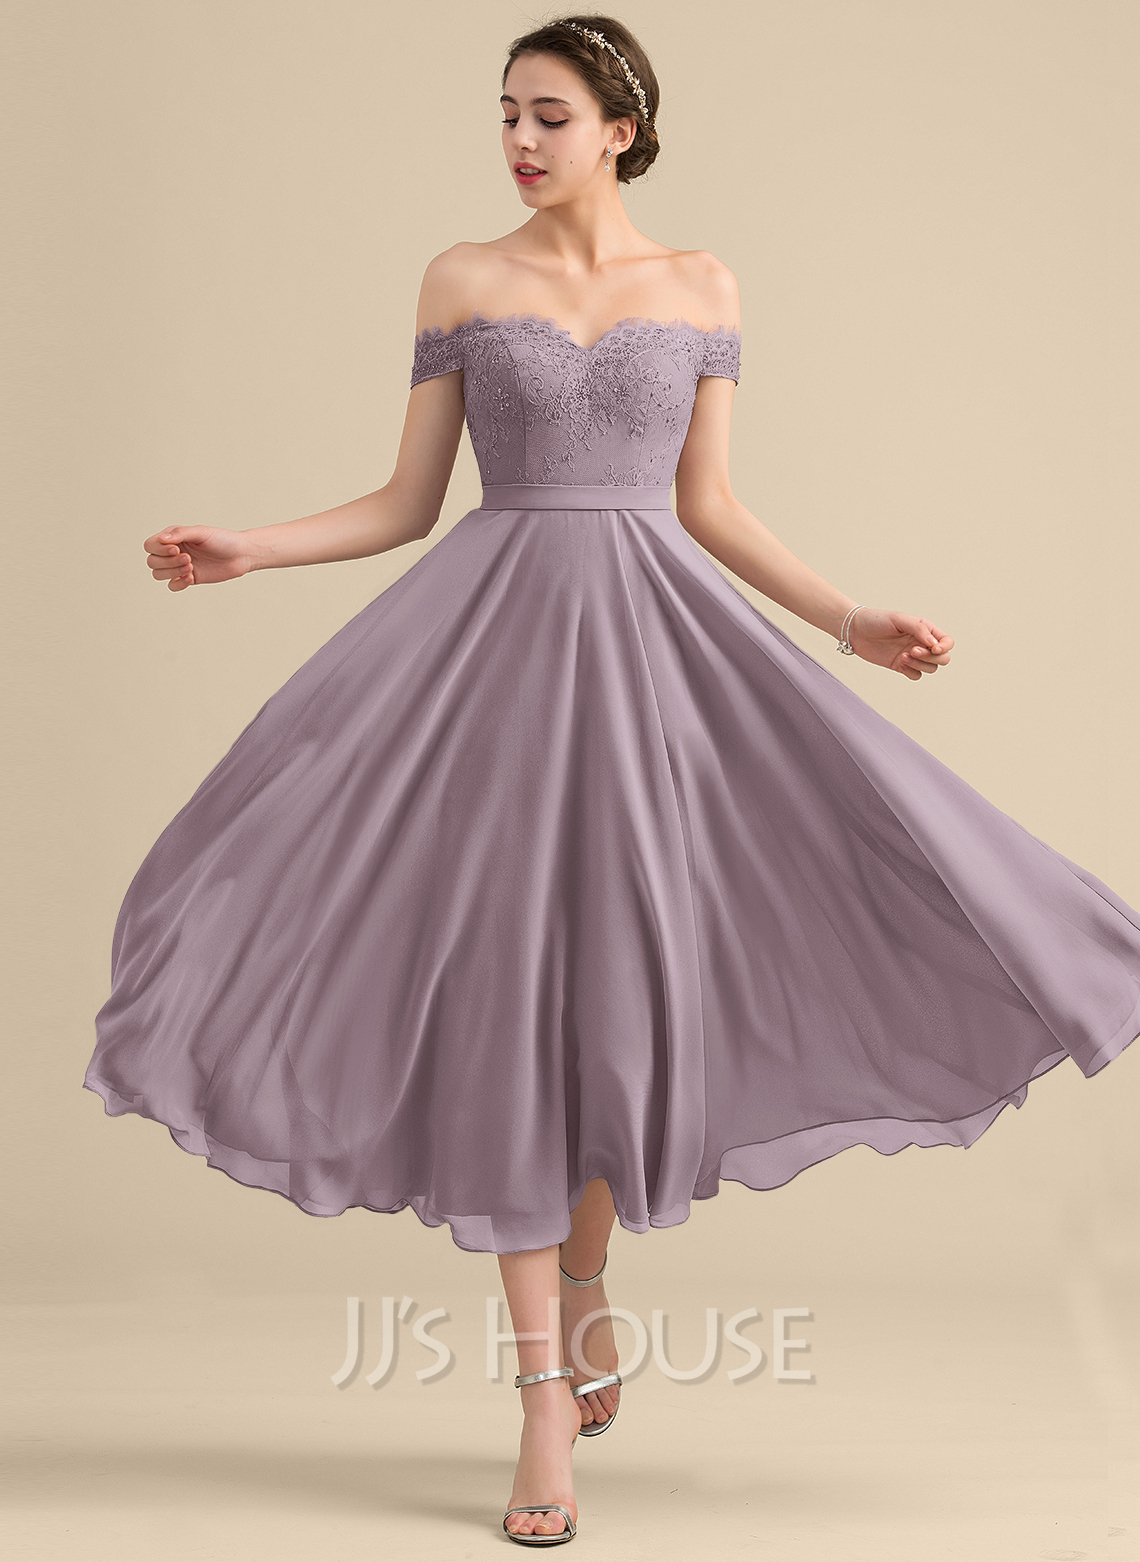 0a595d81432a A-Line/Princess Off-the-Shoulder Tea-Length Chiffon Lace Bridesmaid.  Loading zoom